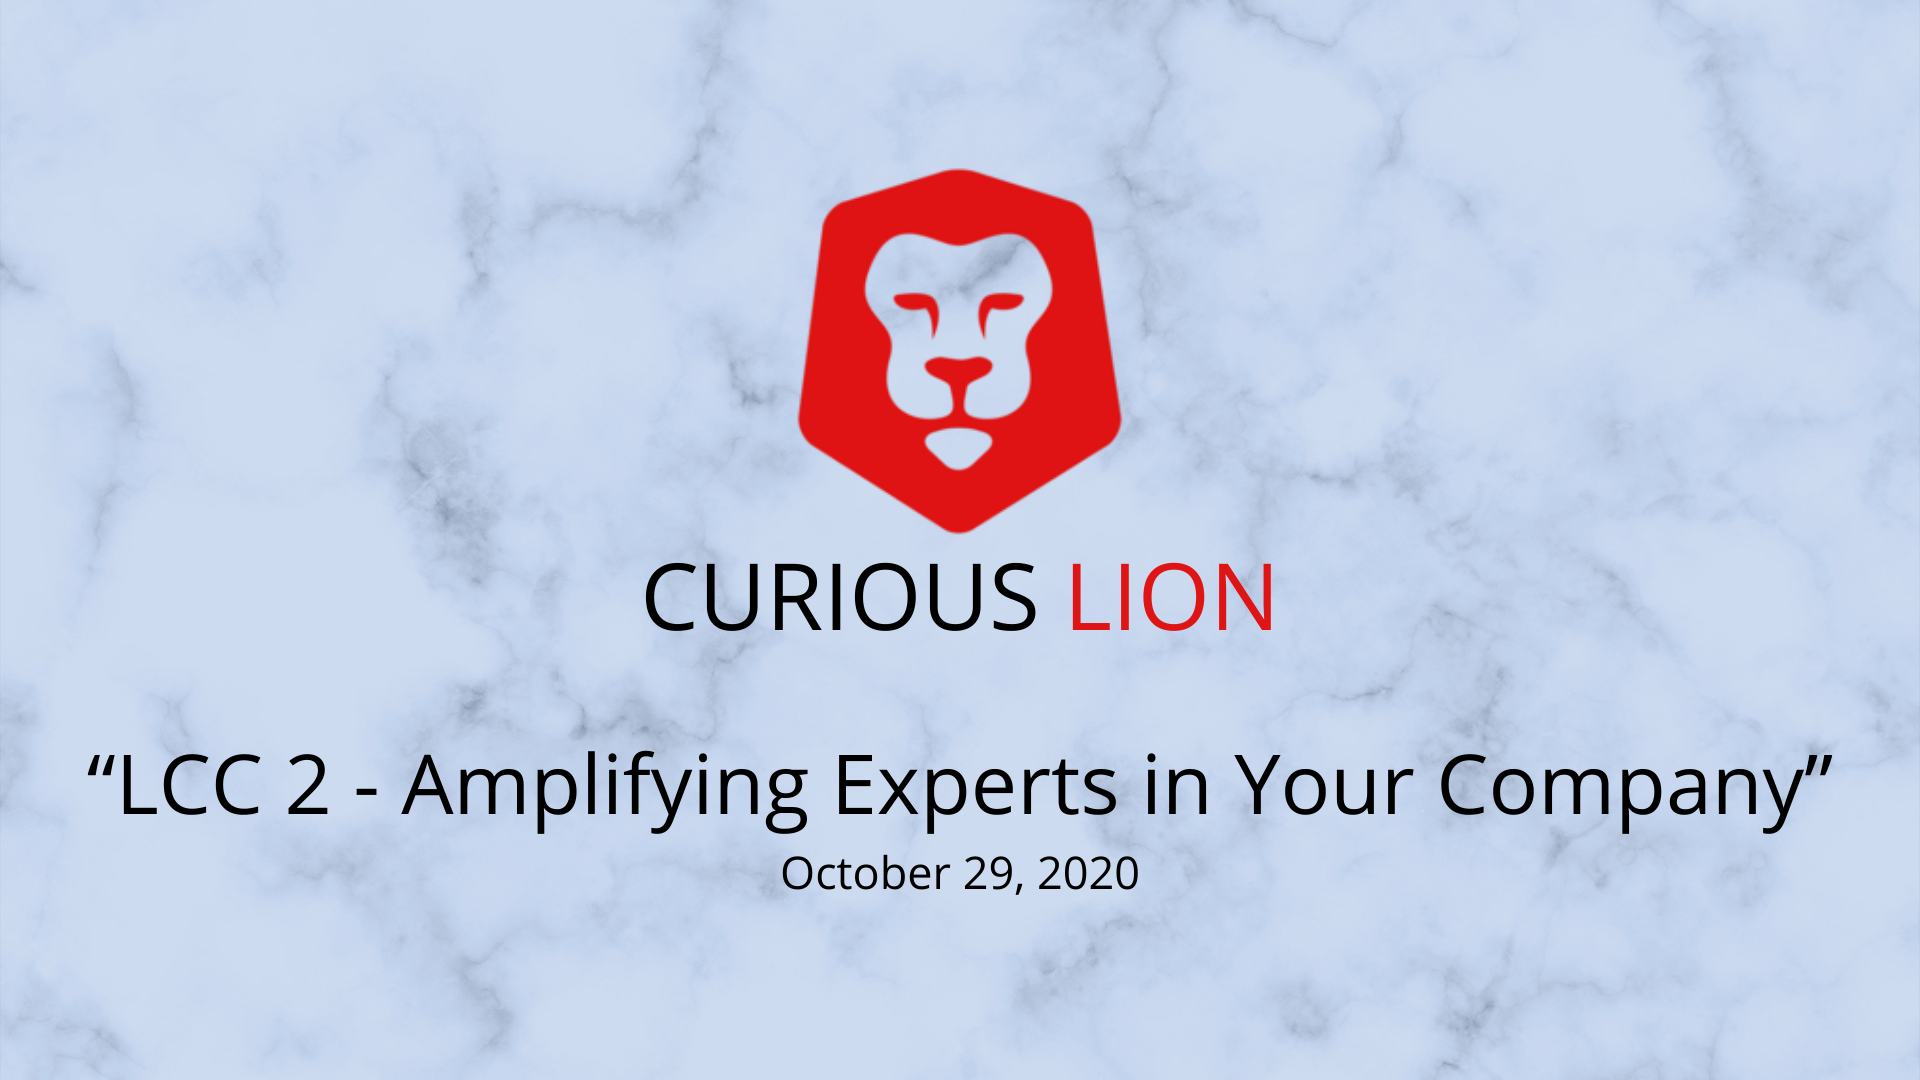 LCC 2 - Amplifying Experts in Your Company